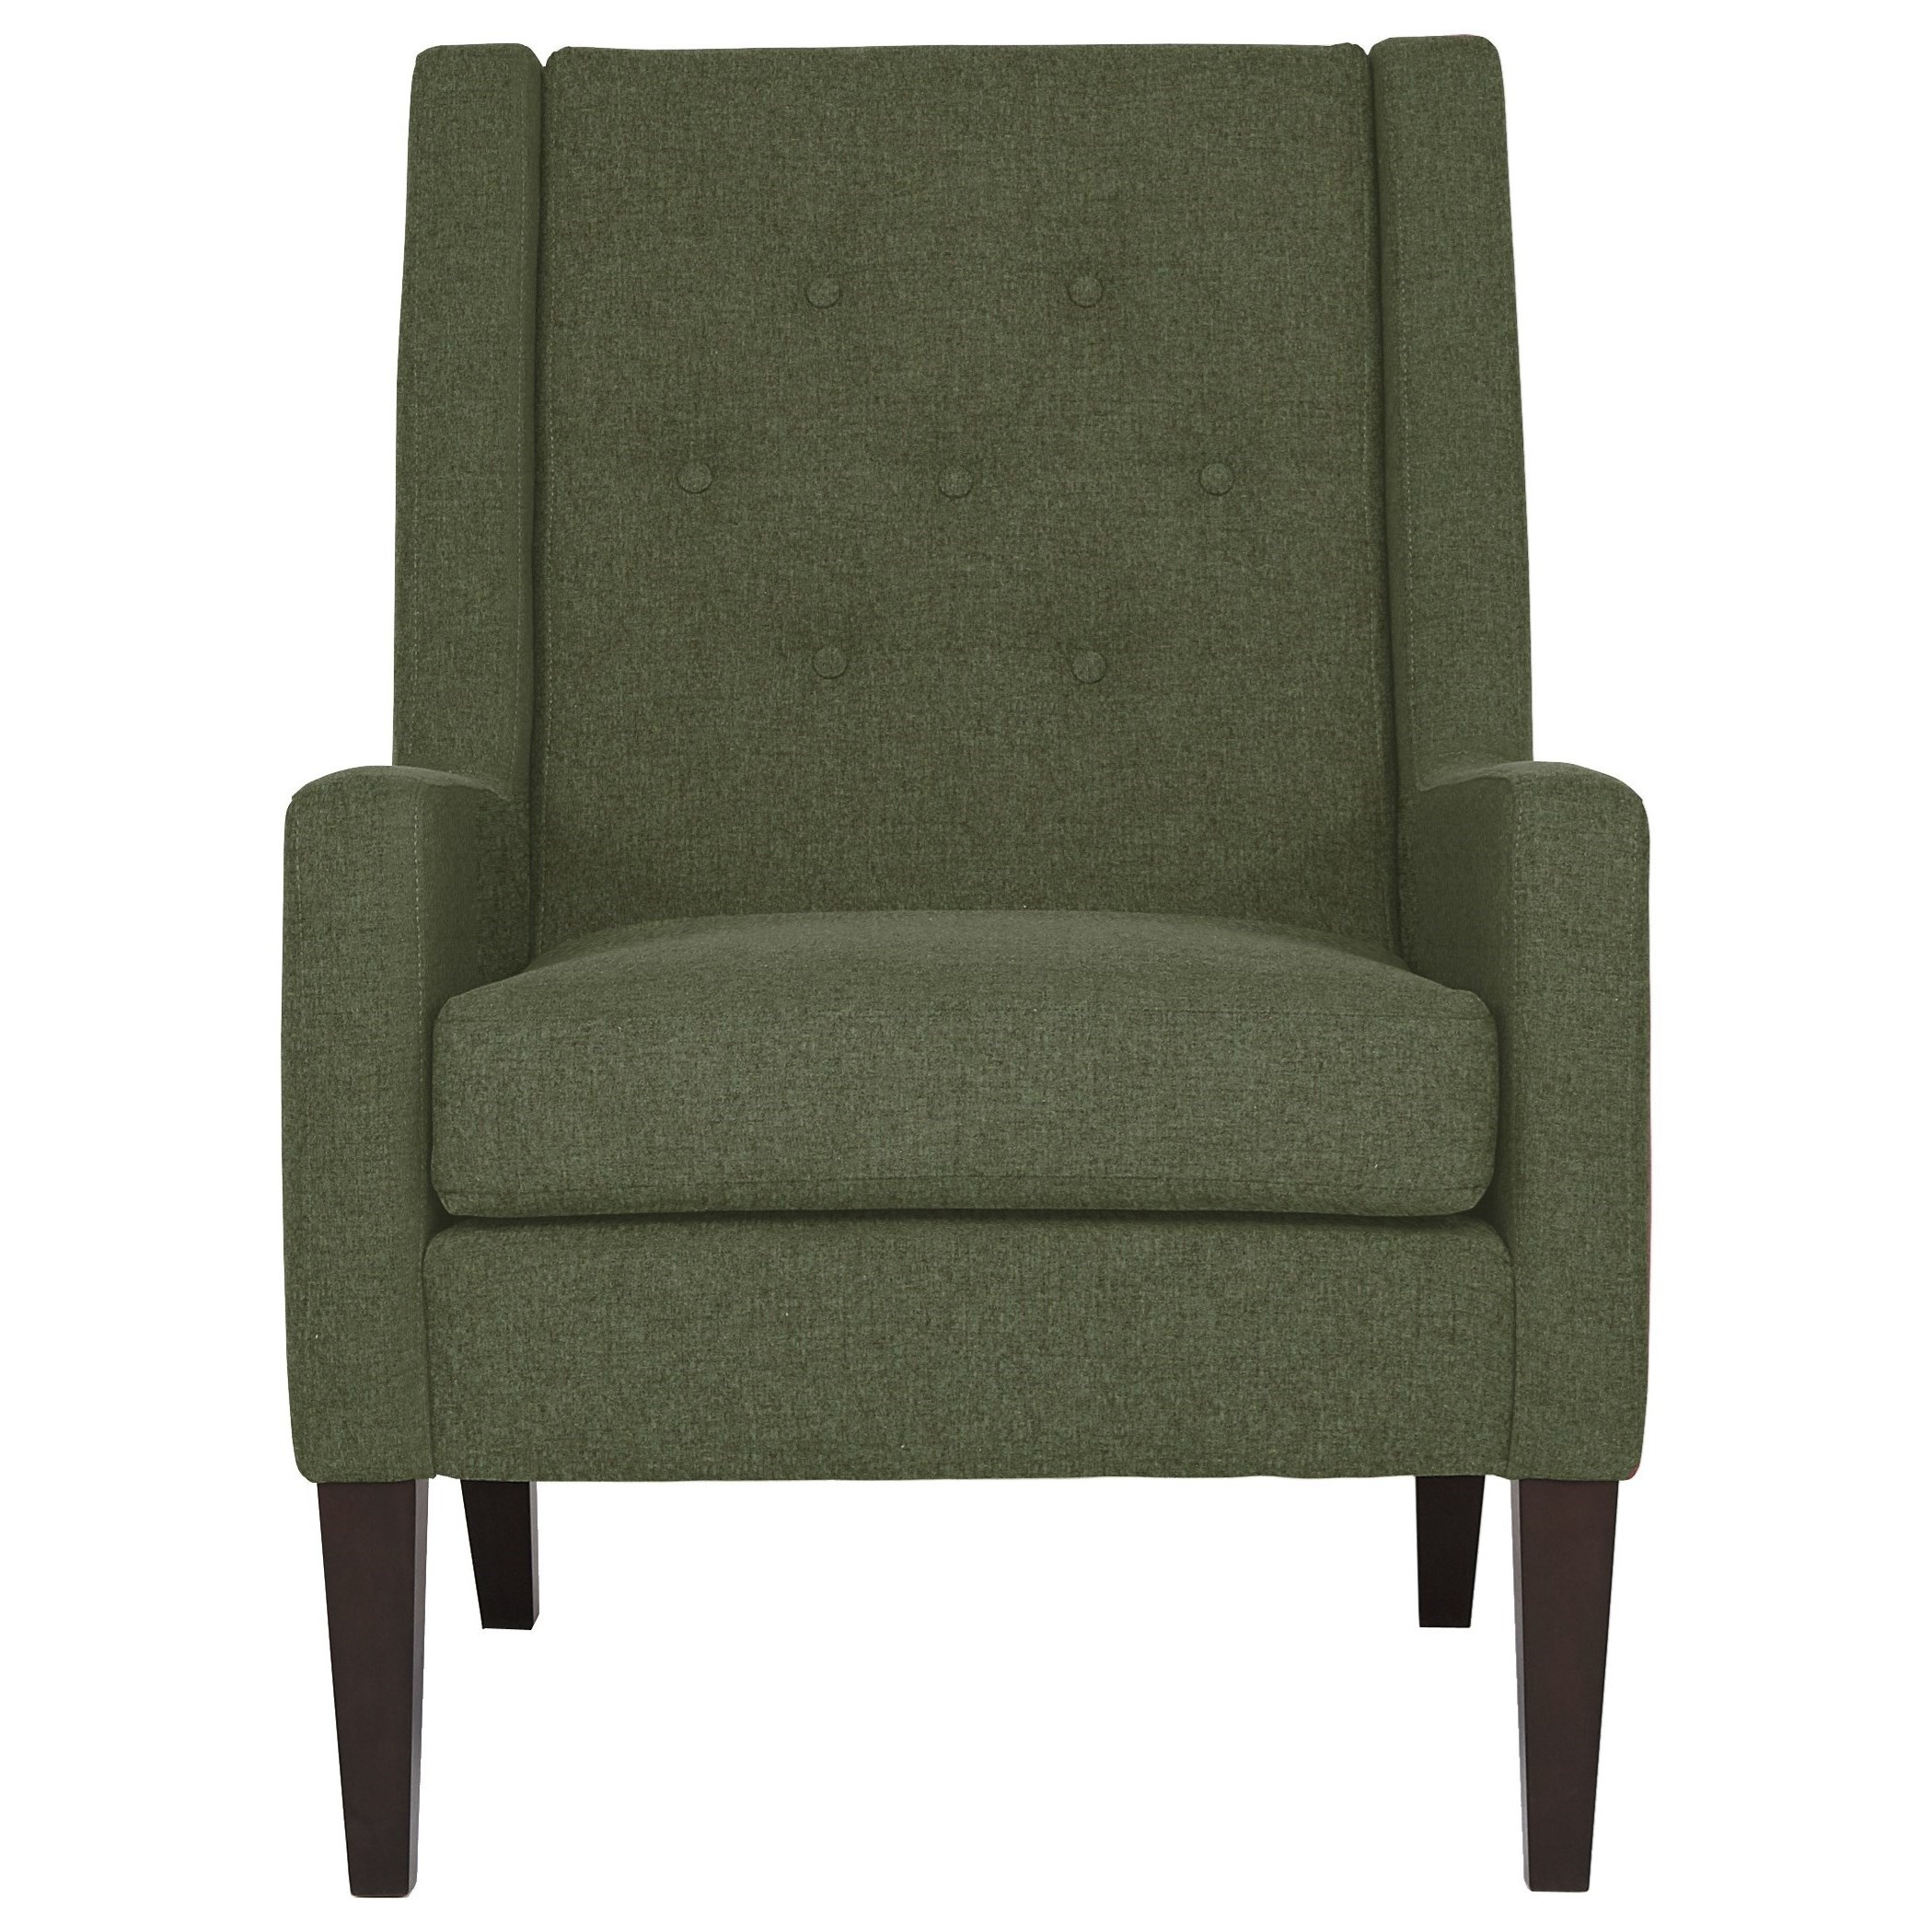 Accent Chairs Chair at Bennett's Furniture and Mattresses